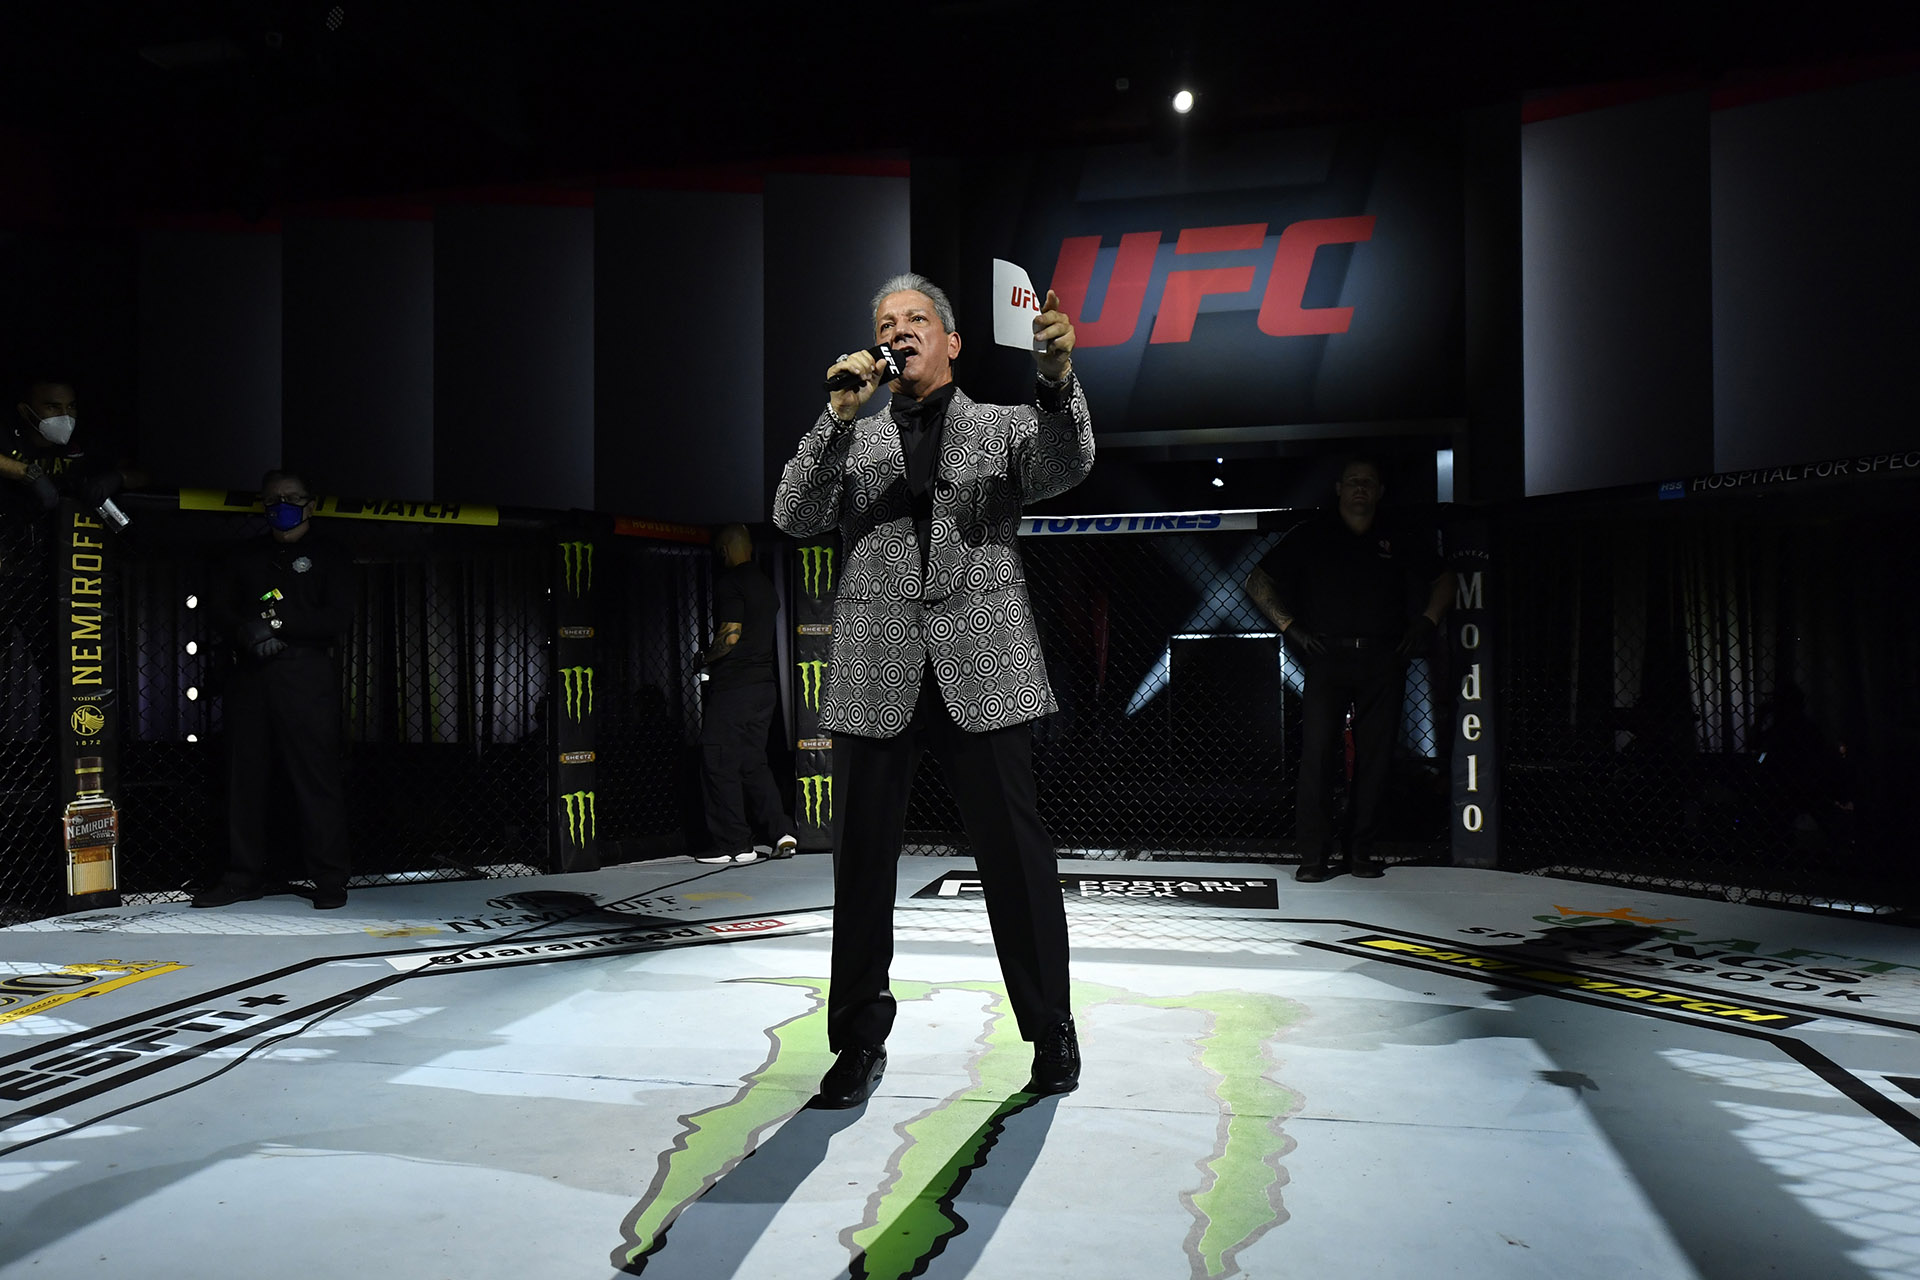 Octagon announcer Bruce Buffer introduces the main event during the UFC 255 event at UFC APEX on November 21, 2020 in Las Vegas, Nevada. (Photo by Jeff Bottari/Zuffa LLC)